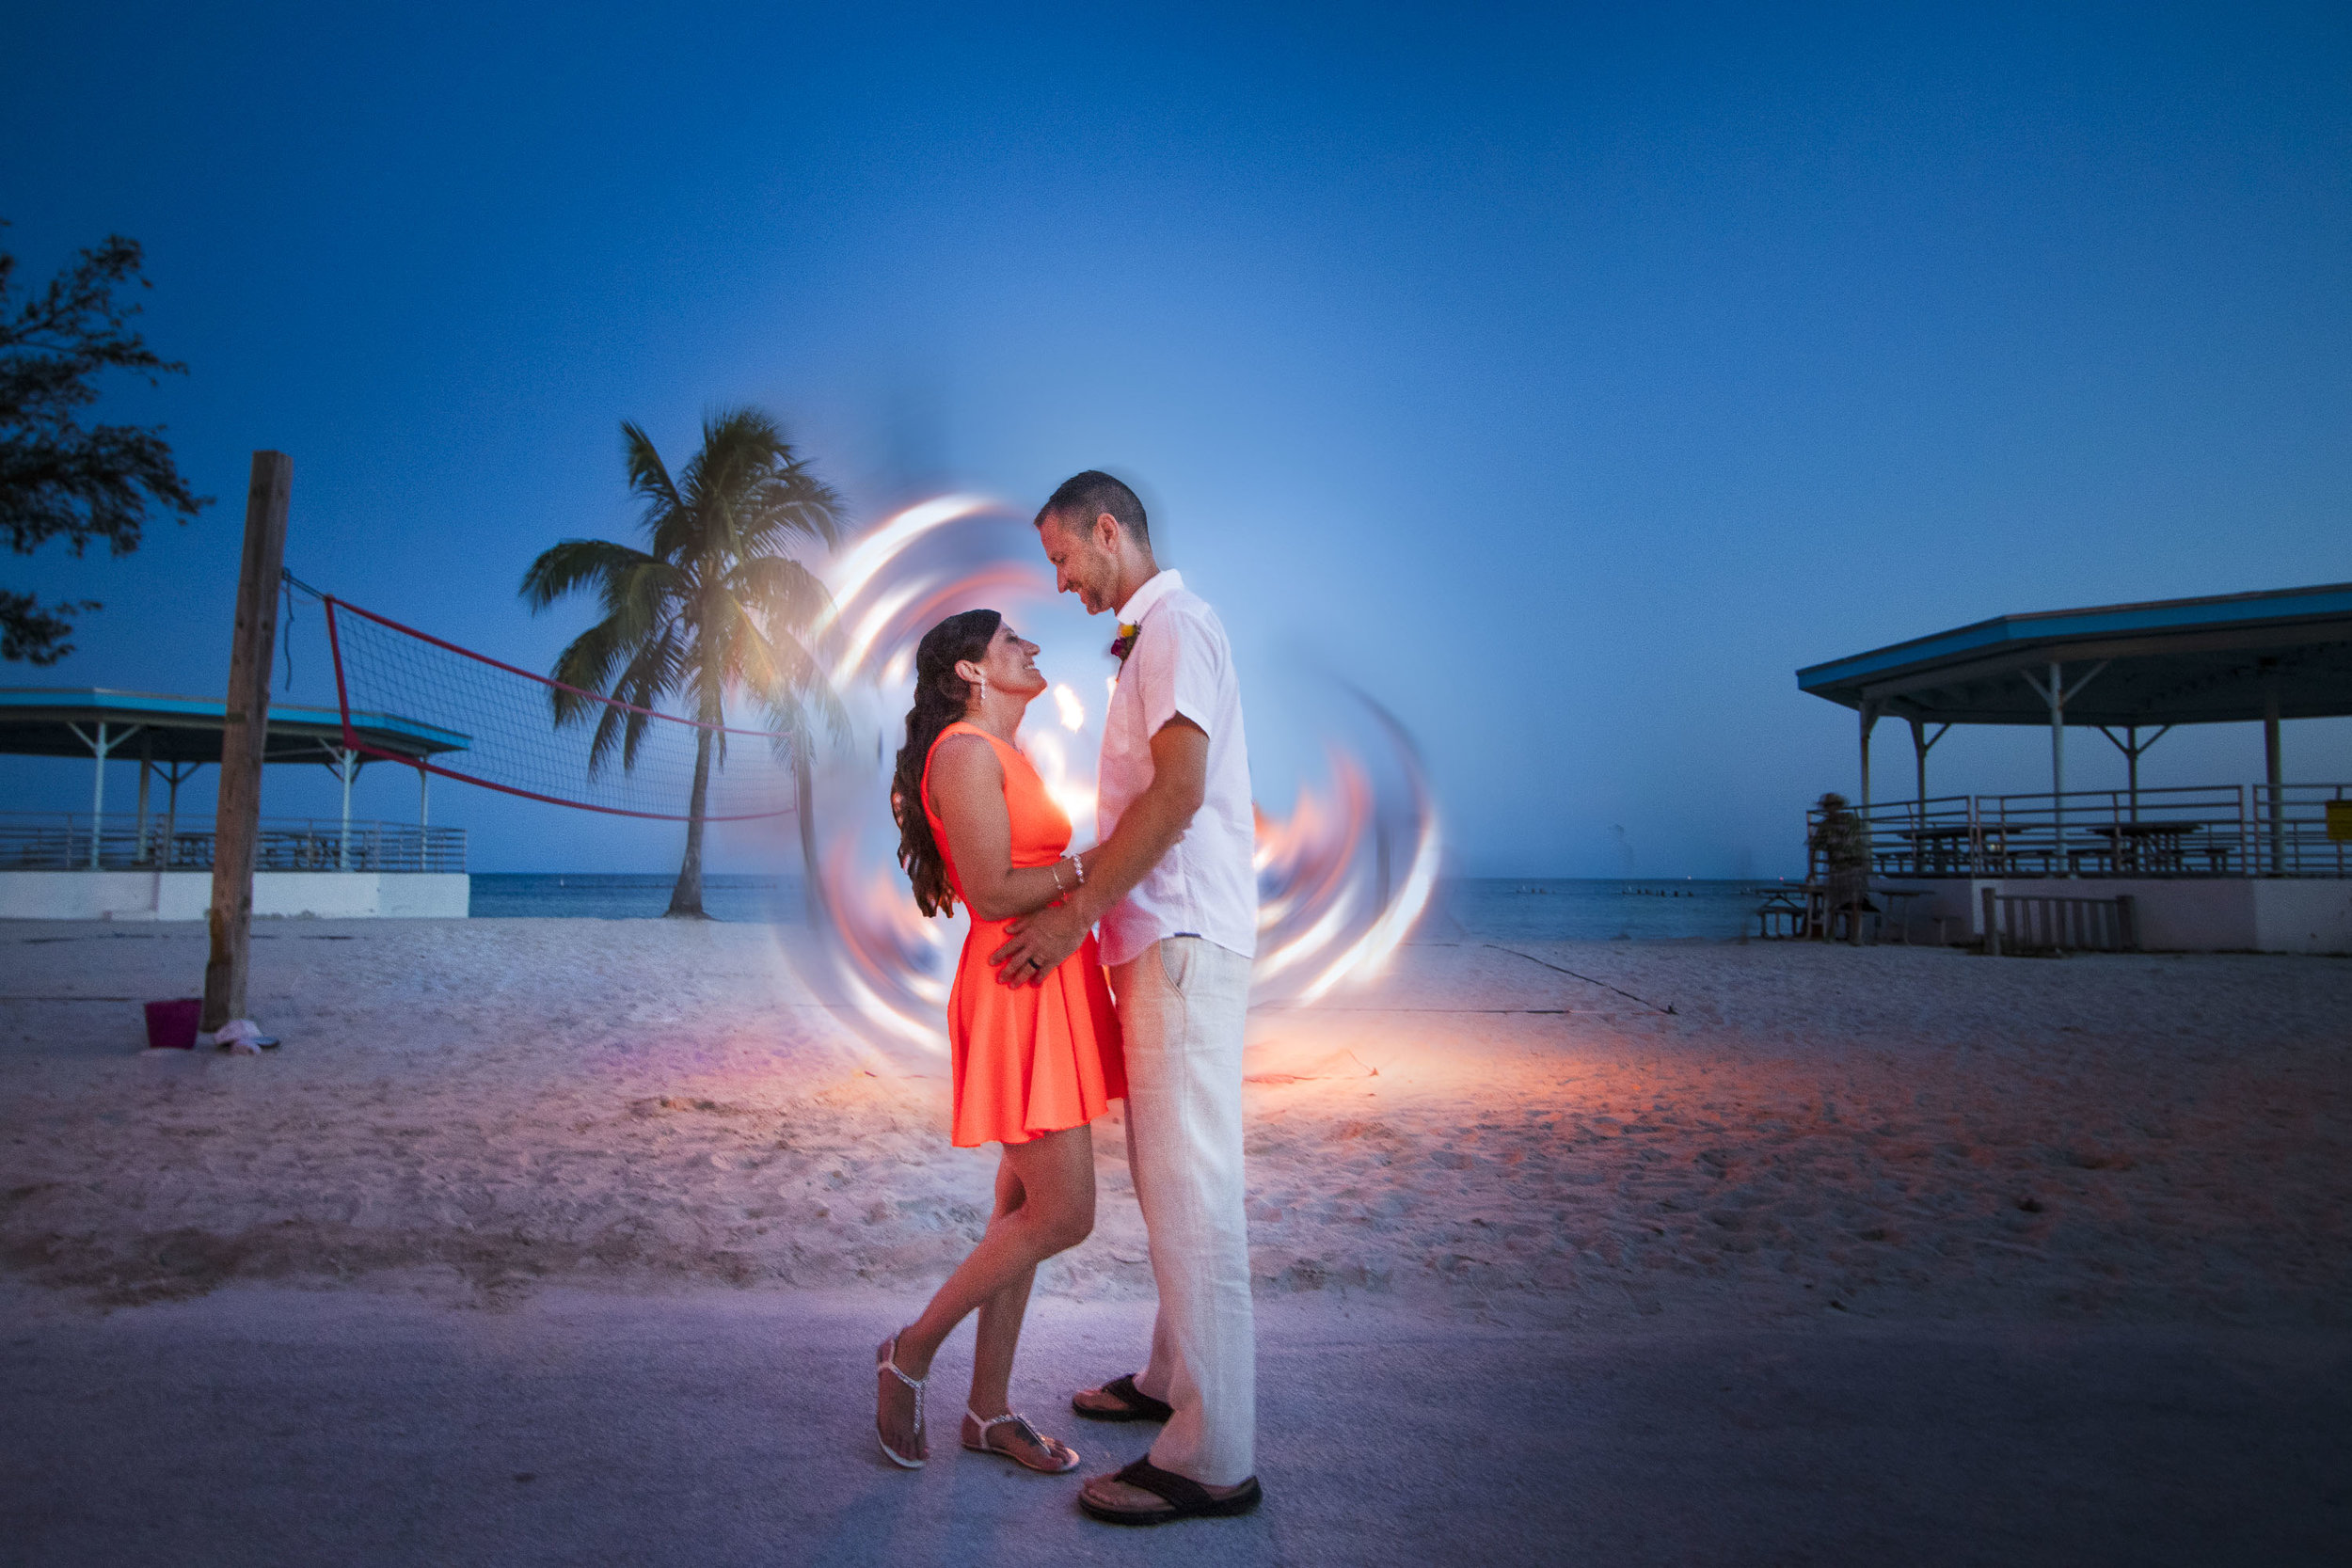 A fire dancer provides a swirl of flame as Key West photographer captures couples portraits